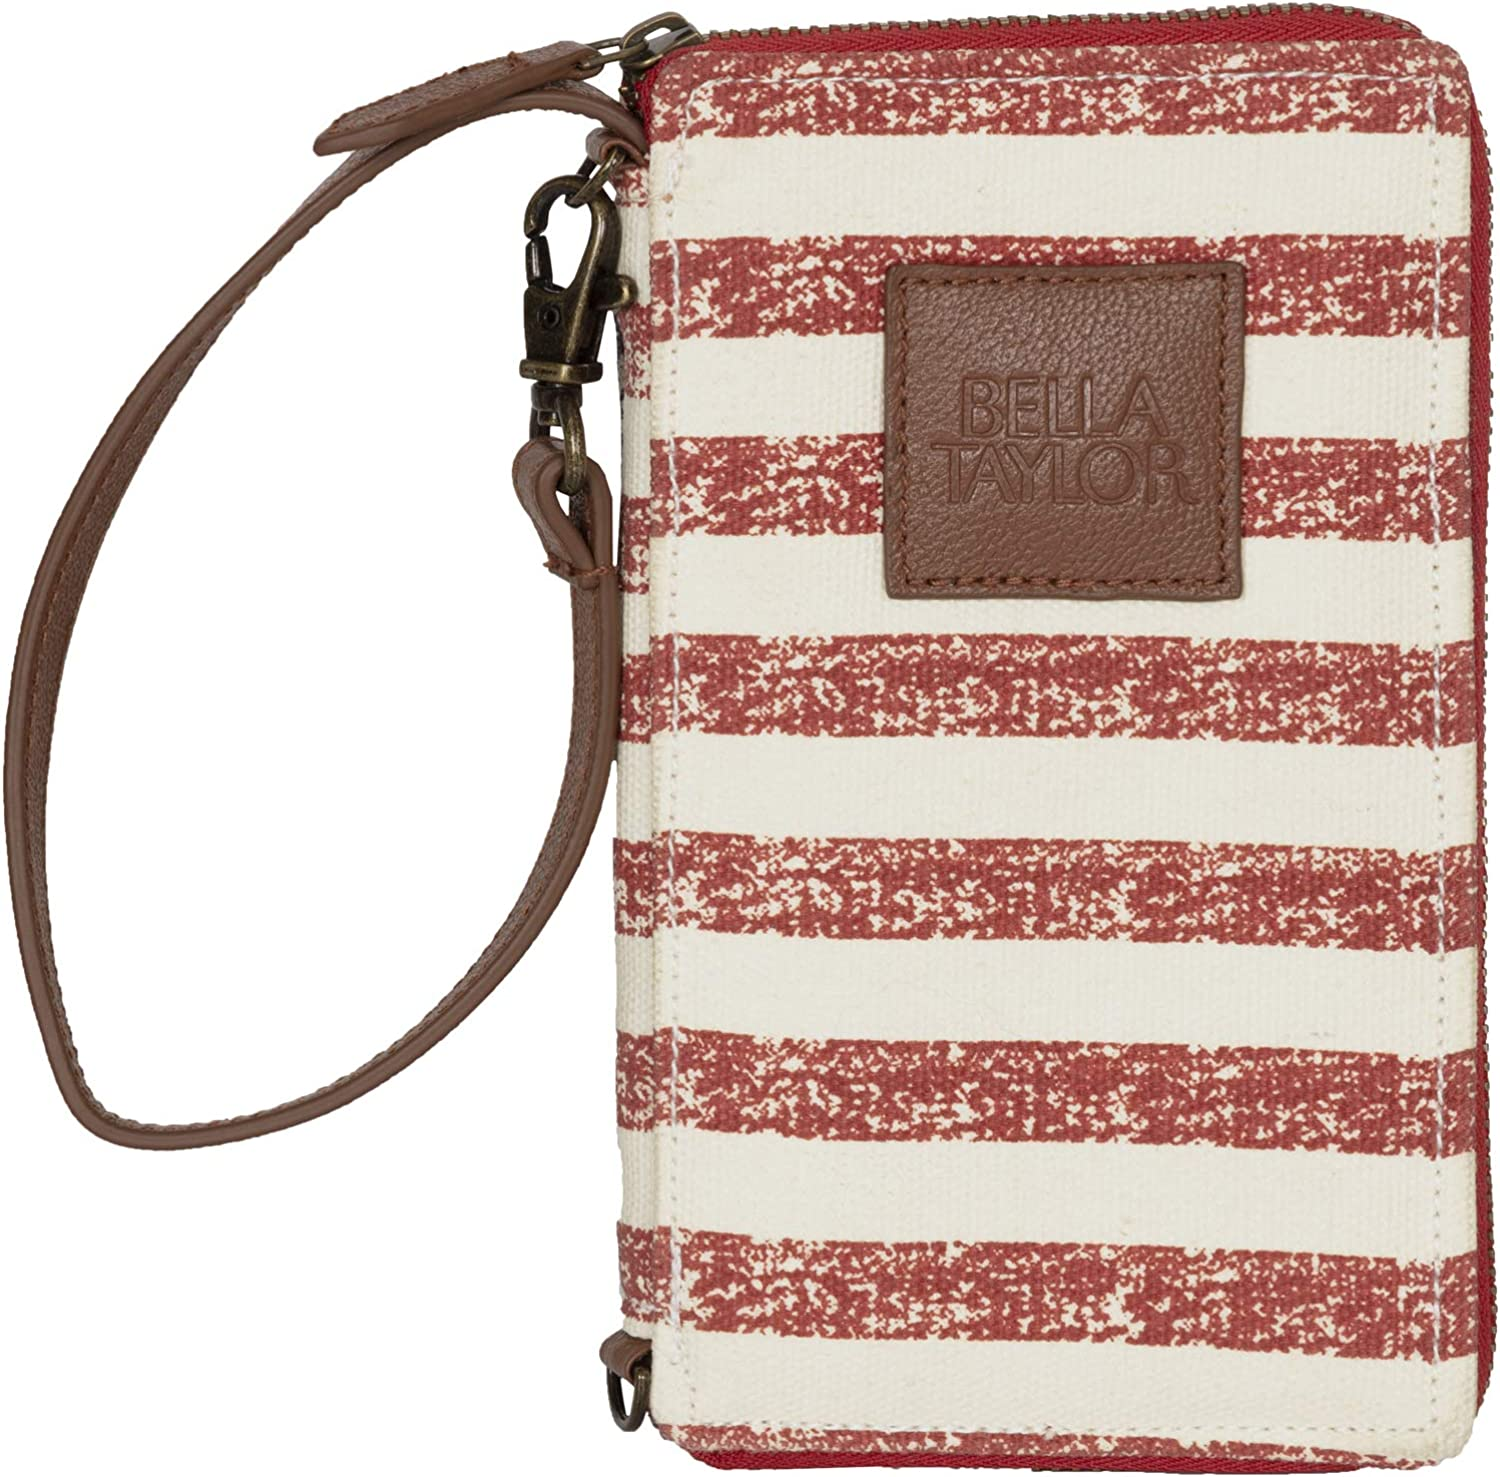 Bella Taylor American Dream Modern Wristlet Wallet Cell Phone Wallet; Red, Cream, and Navy